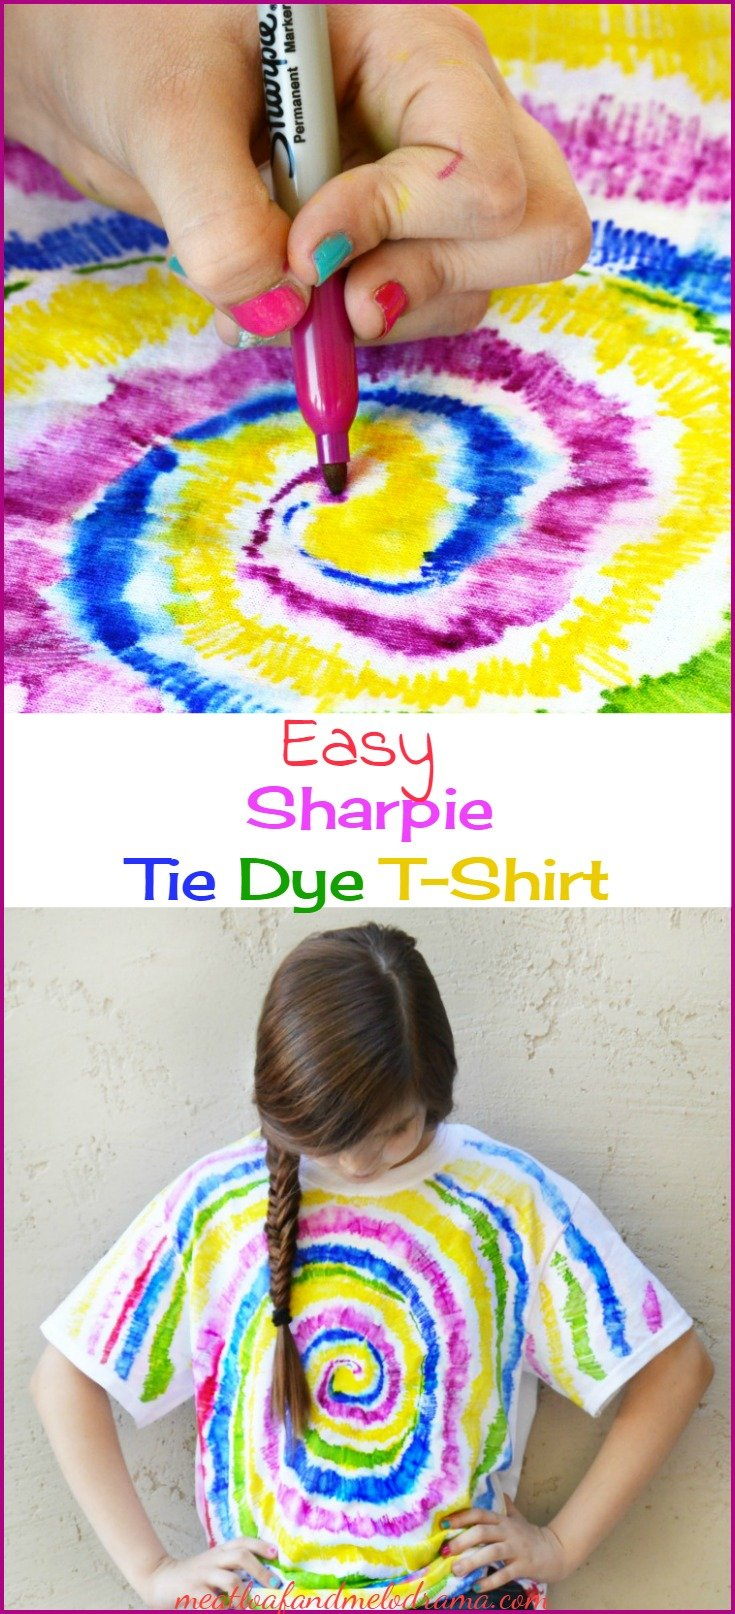 0f90a03fcd05 Easy Sharpie Tie Dye T-Shirt - Meatloaf and Melodrama